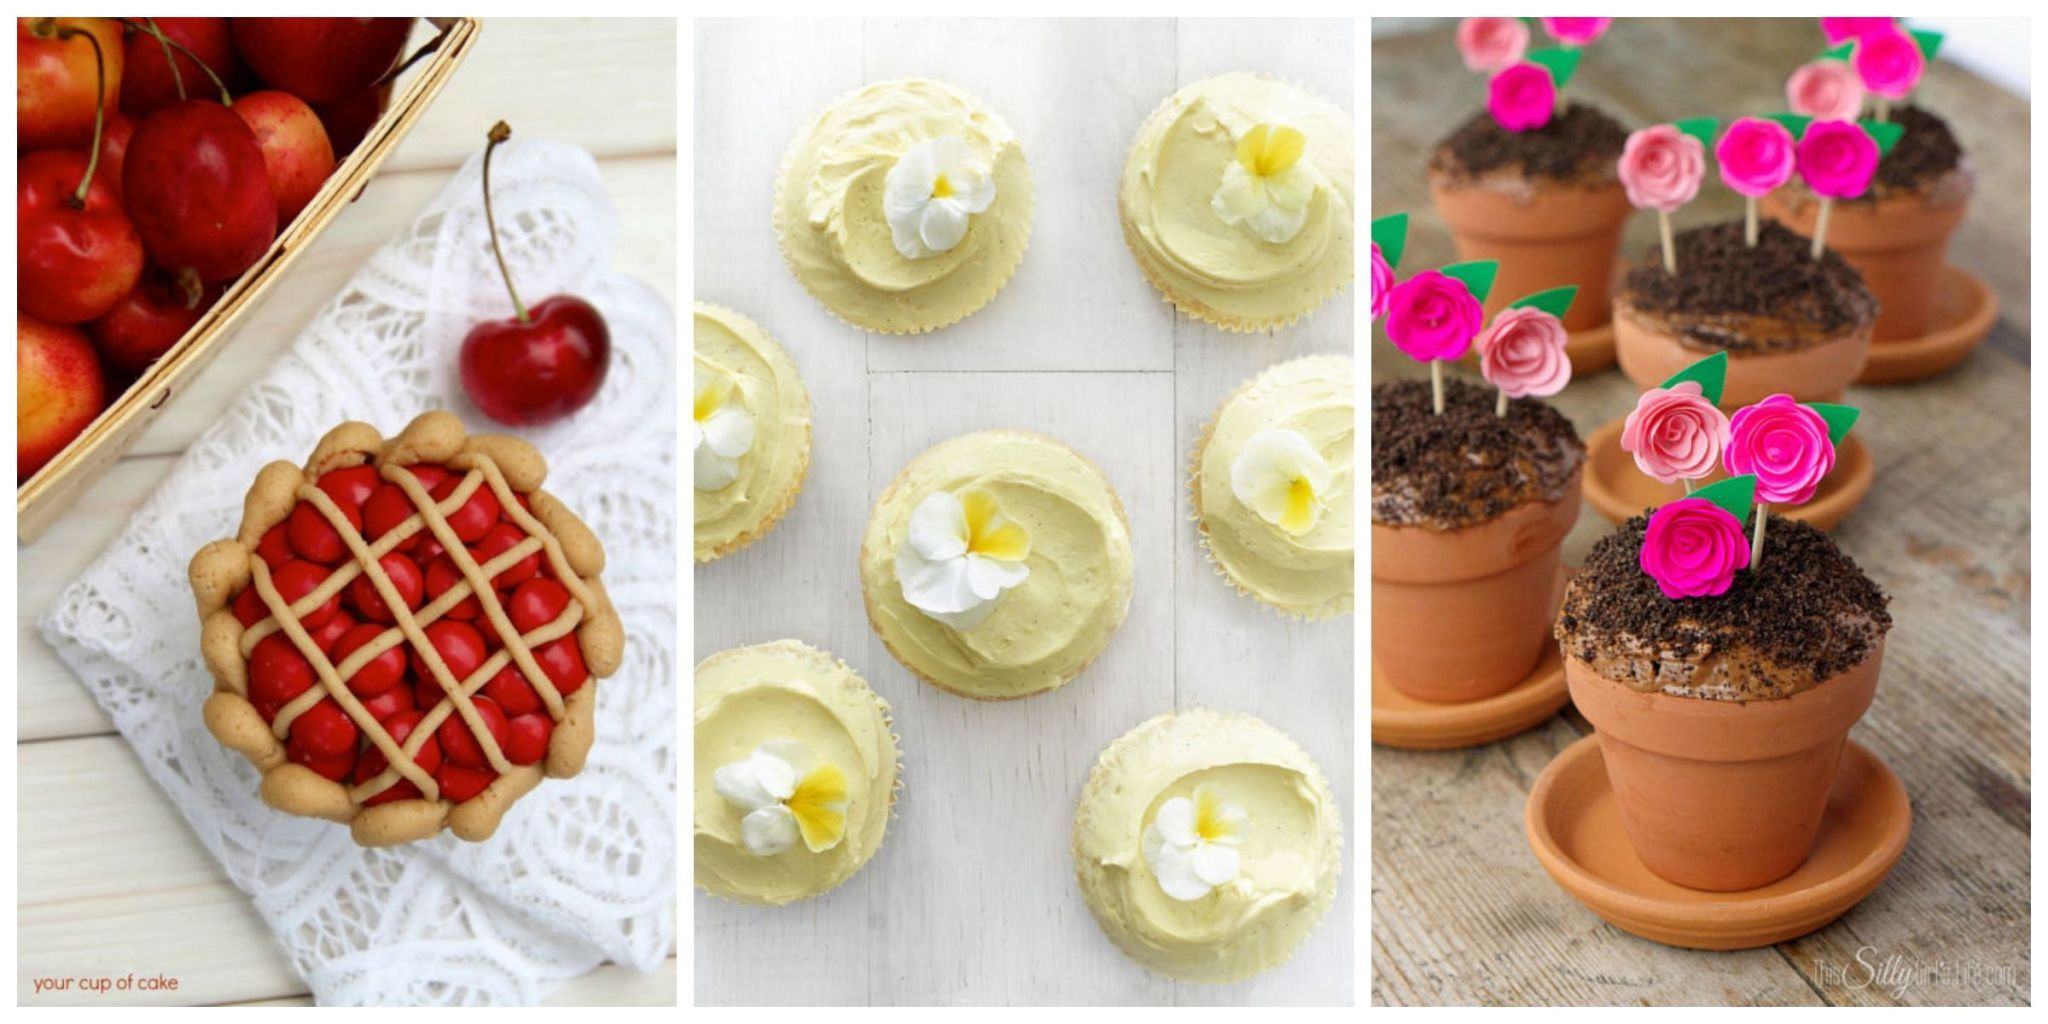 Make Dazzling Homemade Cupcakes For Any Occasion With Our Delicious Recipes  And Simple Decorating Tips. Plus, Get Our Best Ever Cake Recipes!